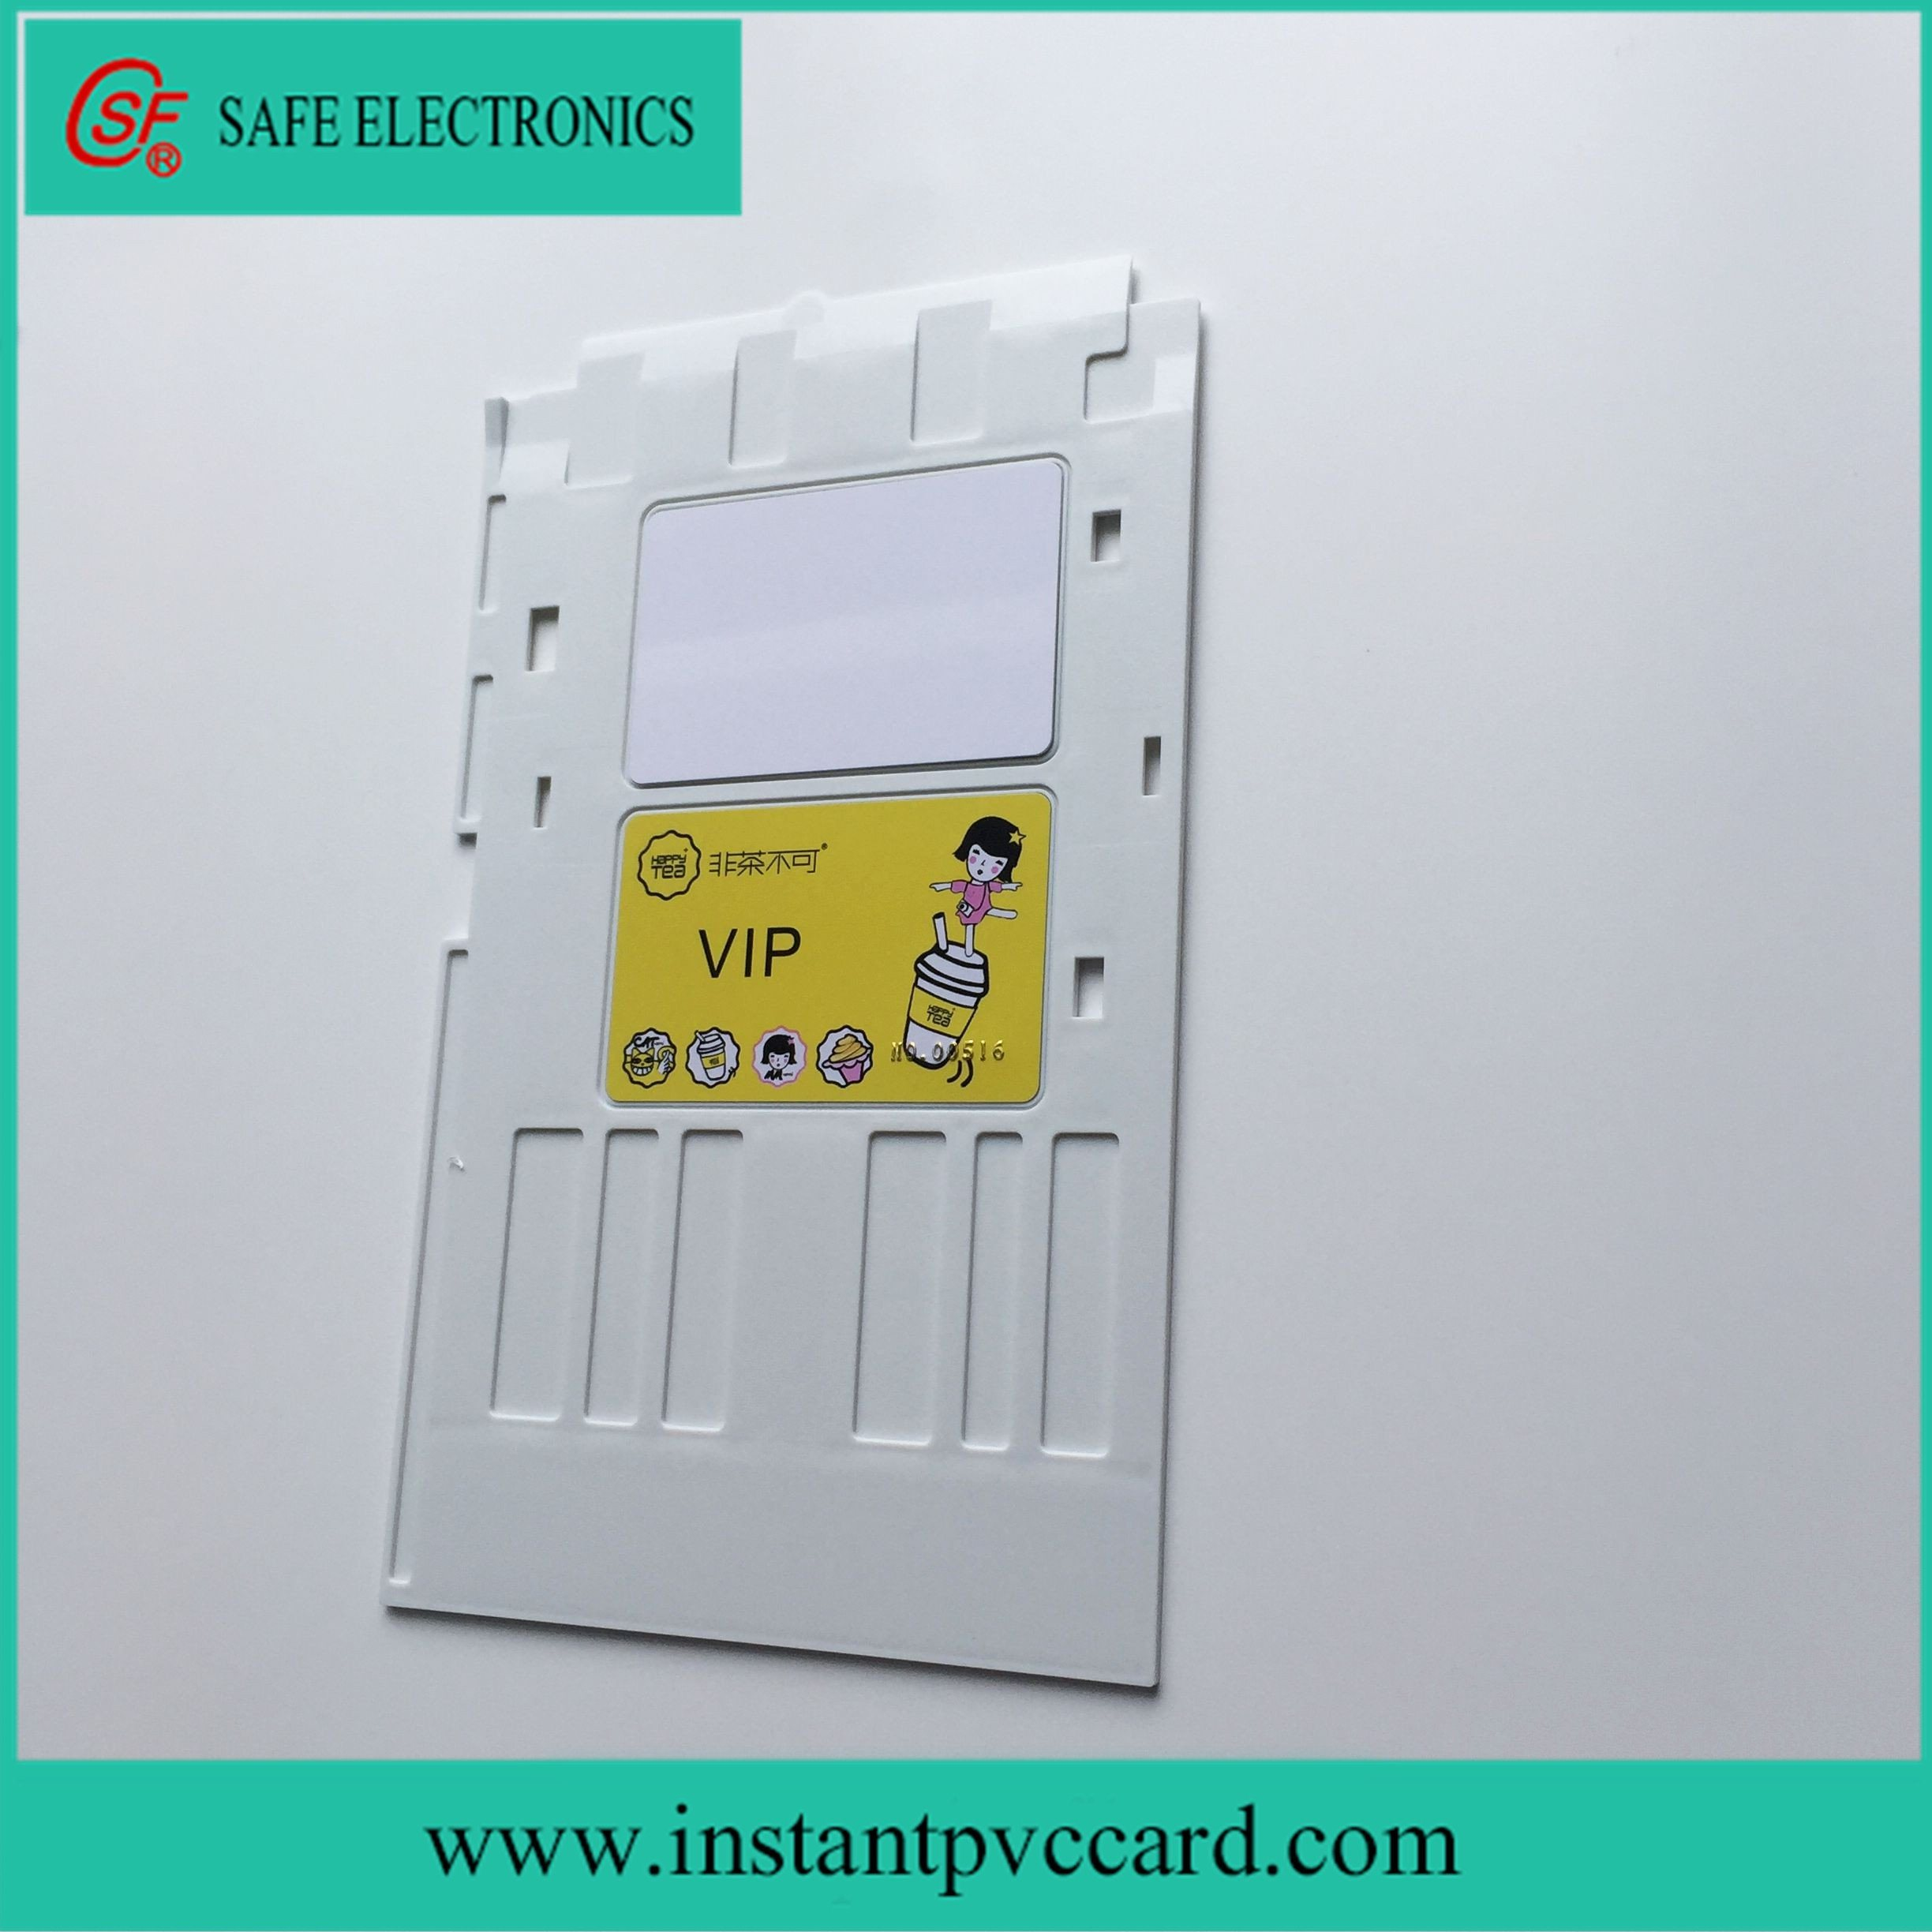 White Ink Printing PVC Card Tray for Epson P50 Printer